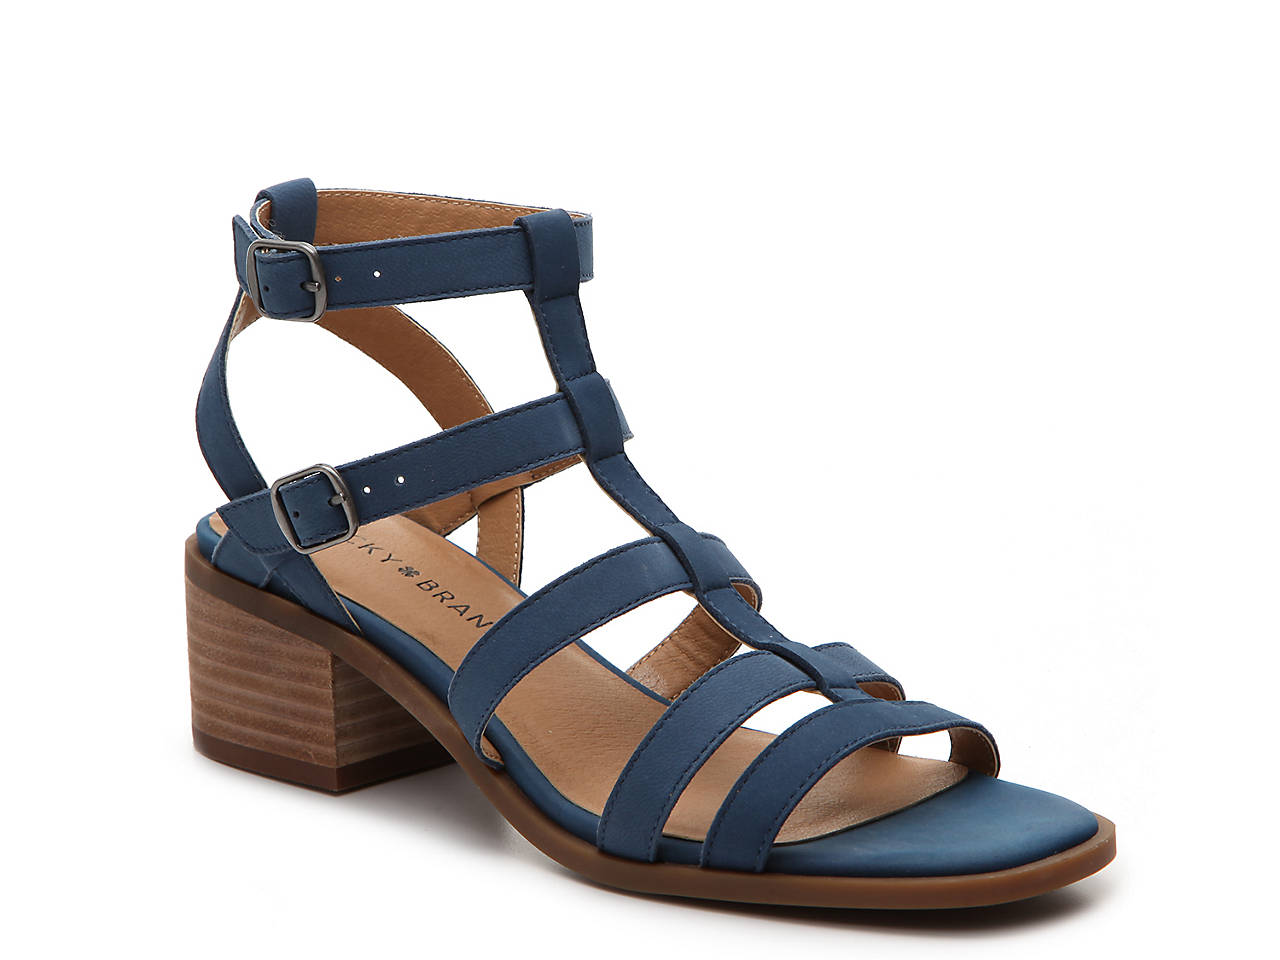 650fa87a59cd Lucky Brand Paytun Gladiator Sandal Women s Shoes